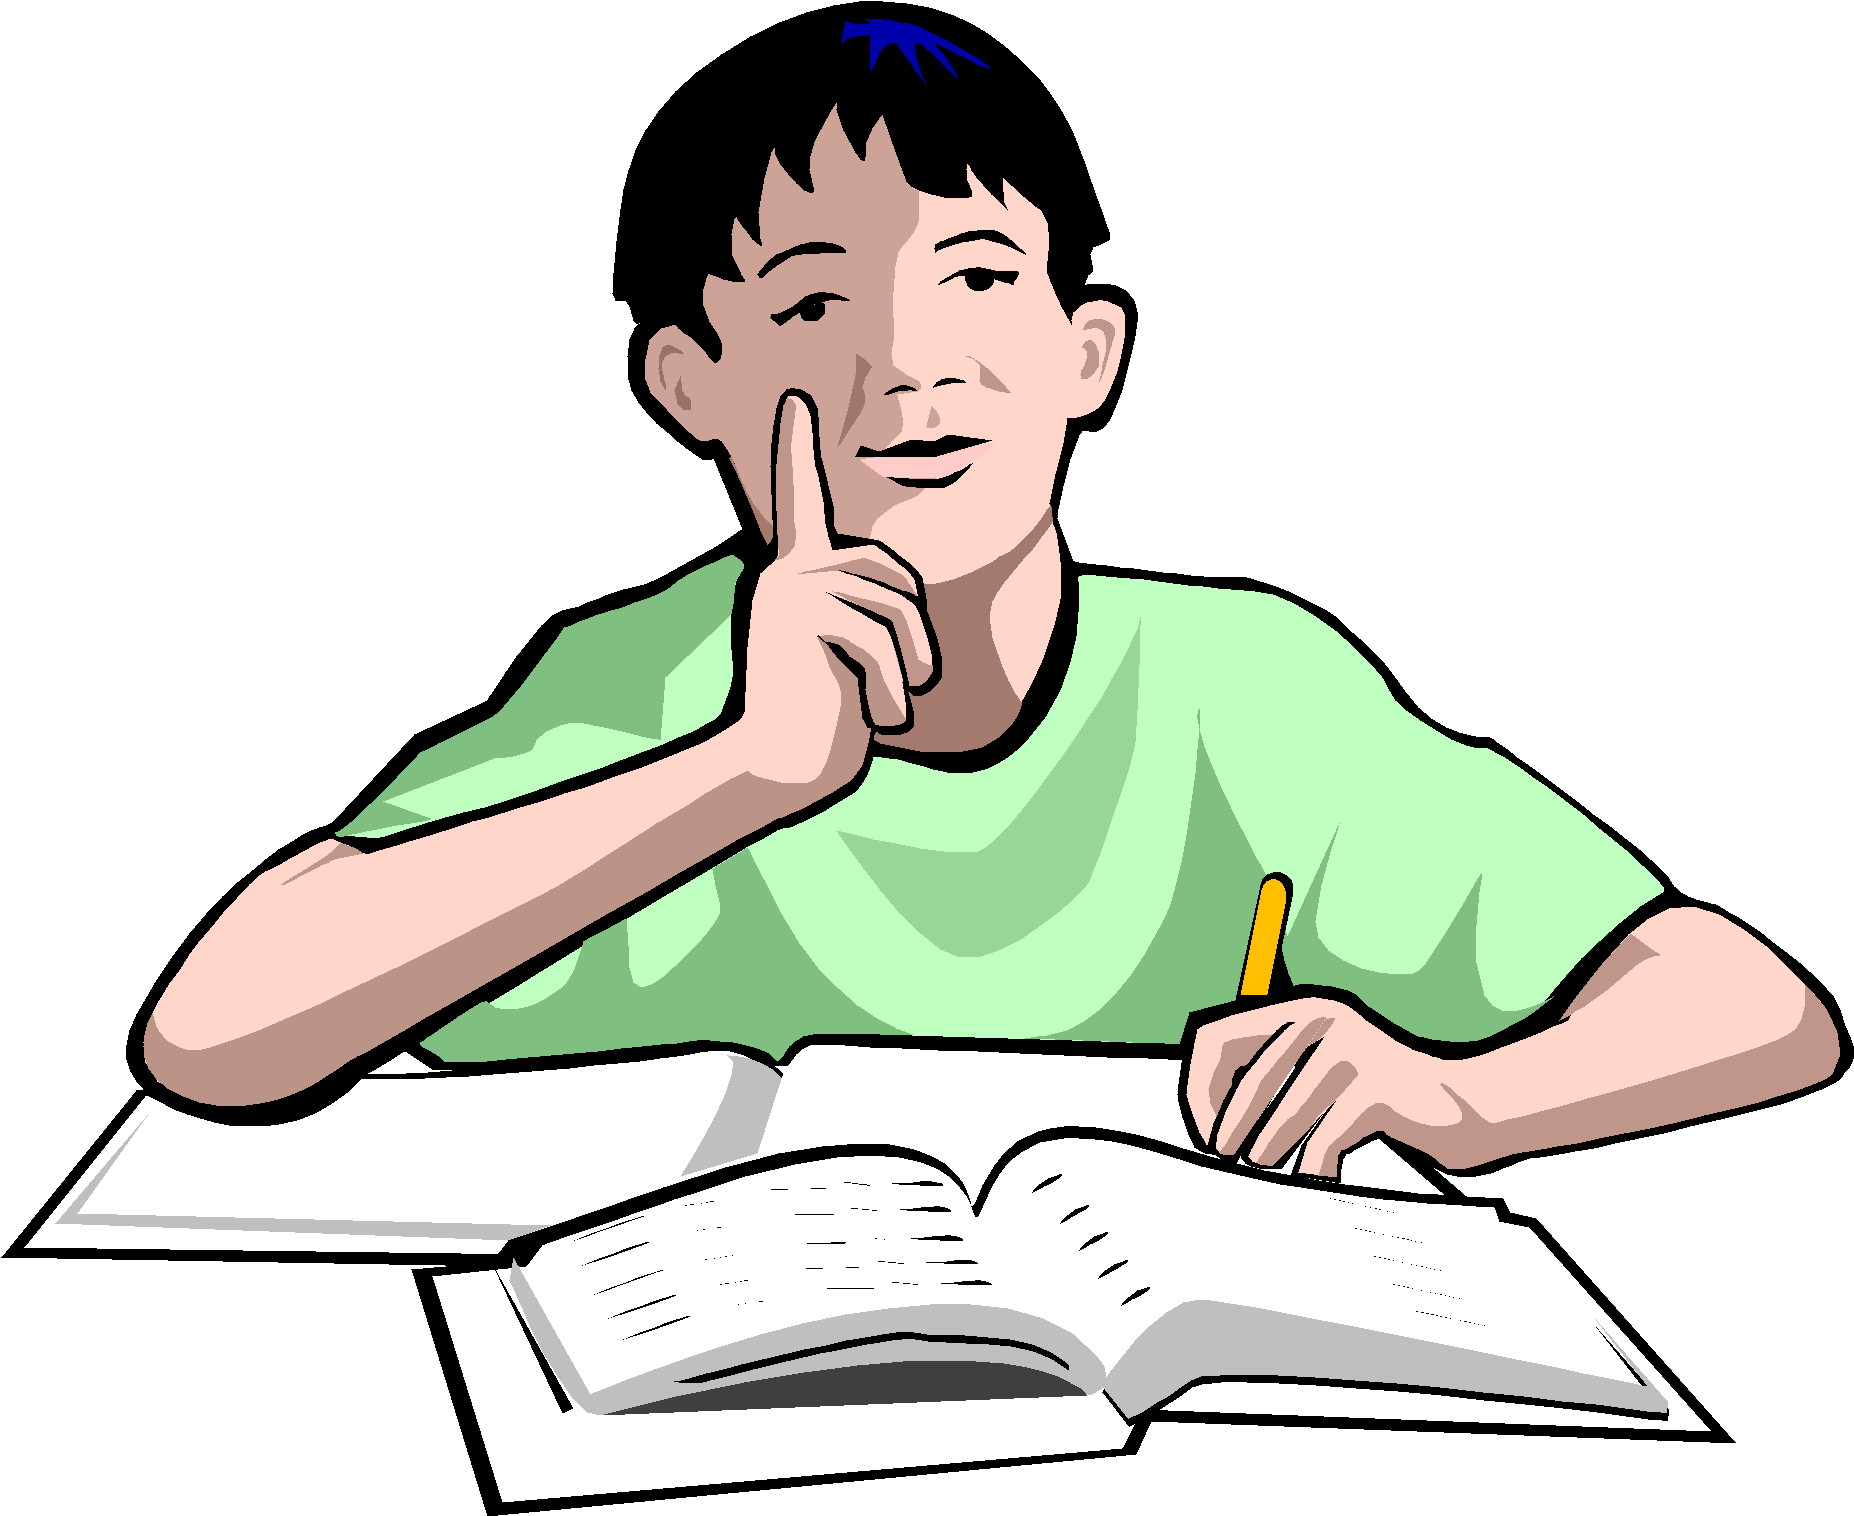 Plagiarism copy on emaze. Study clipart student thinking